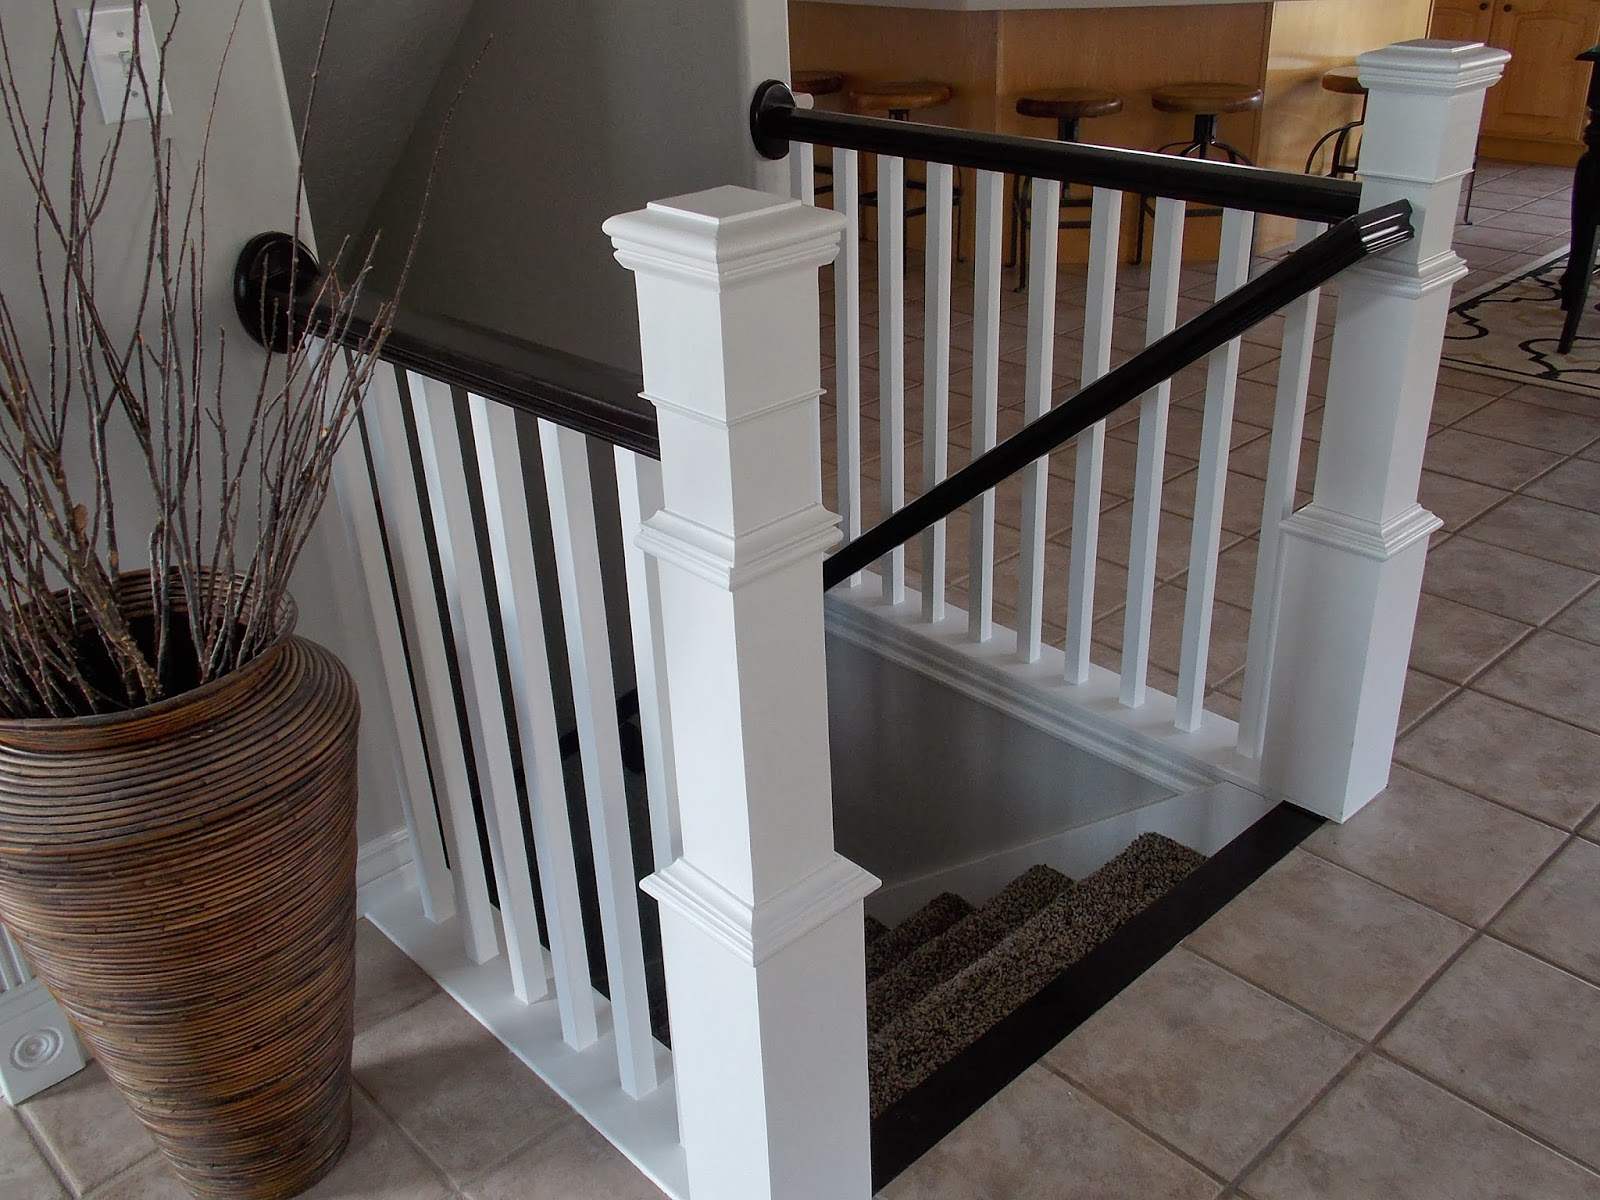 Remodelaholic | Stair Banister Renovation Using Existing ...